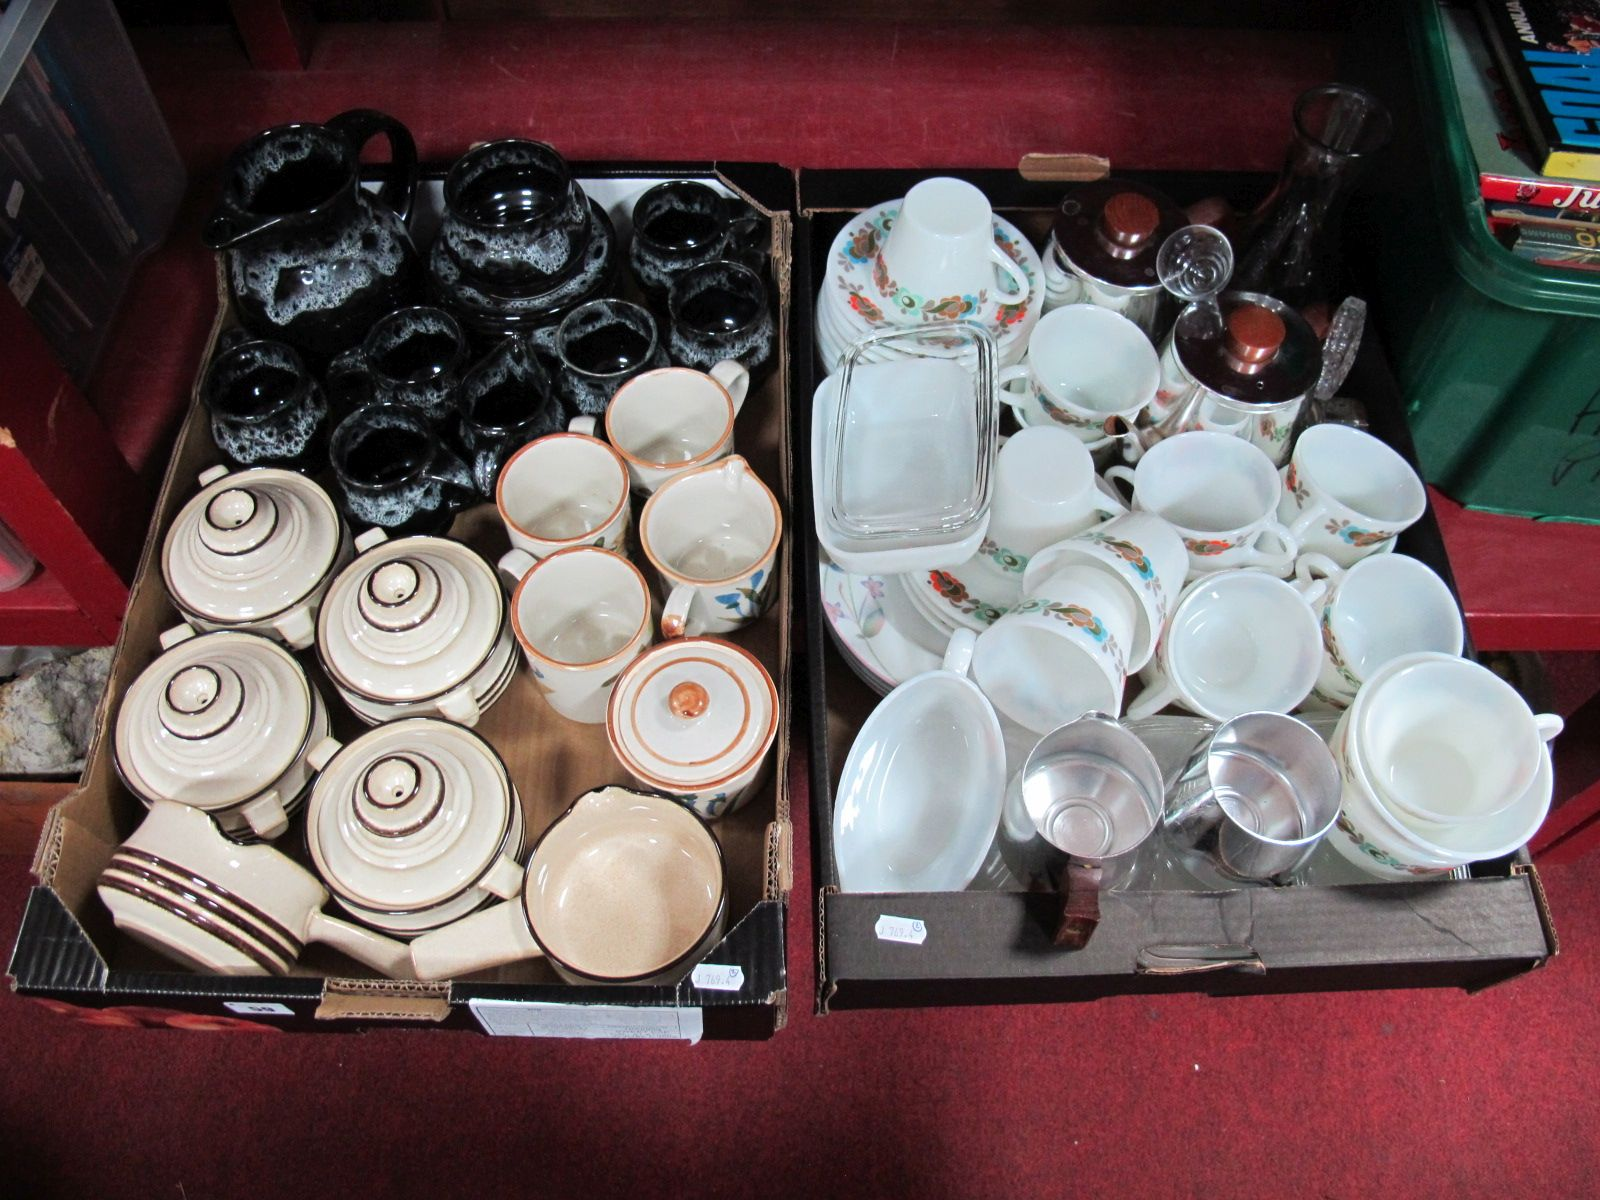 Lot 59 - Denby Soup Dishes and Covers, a Denby style pottery six place tea service of mottled grey on a black